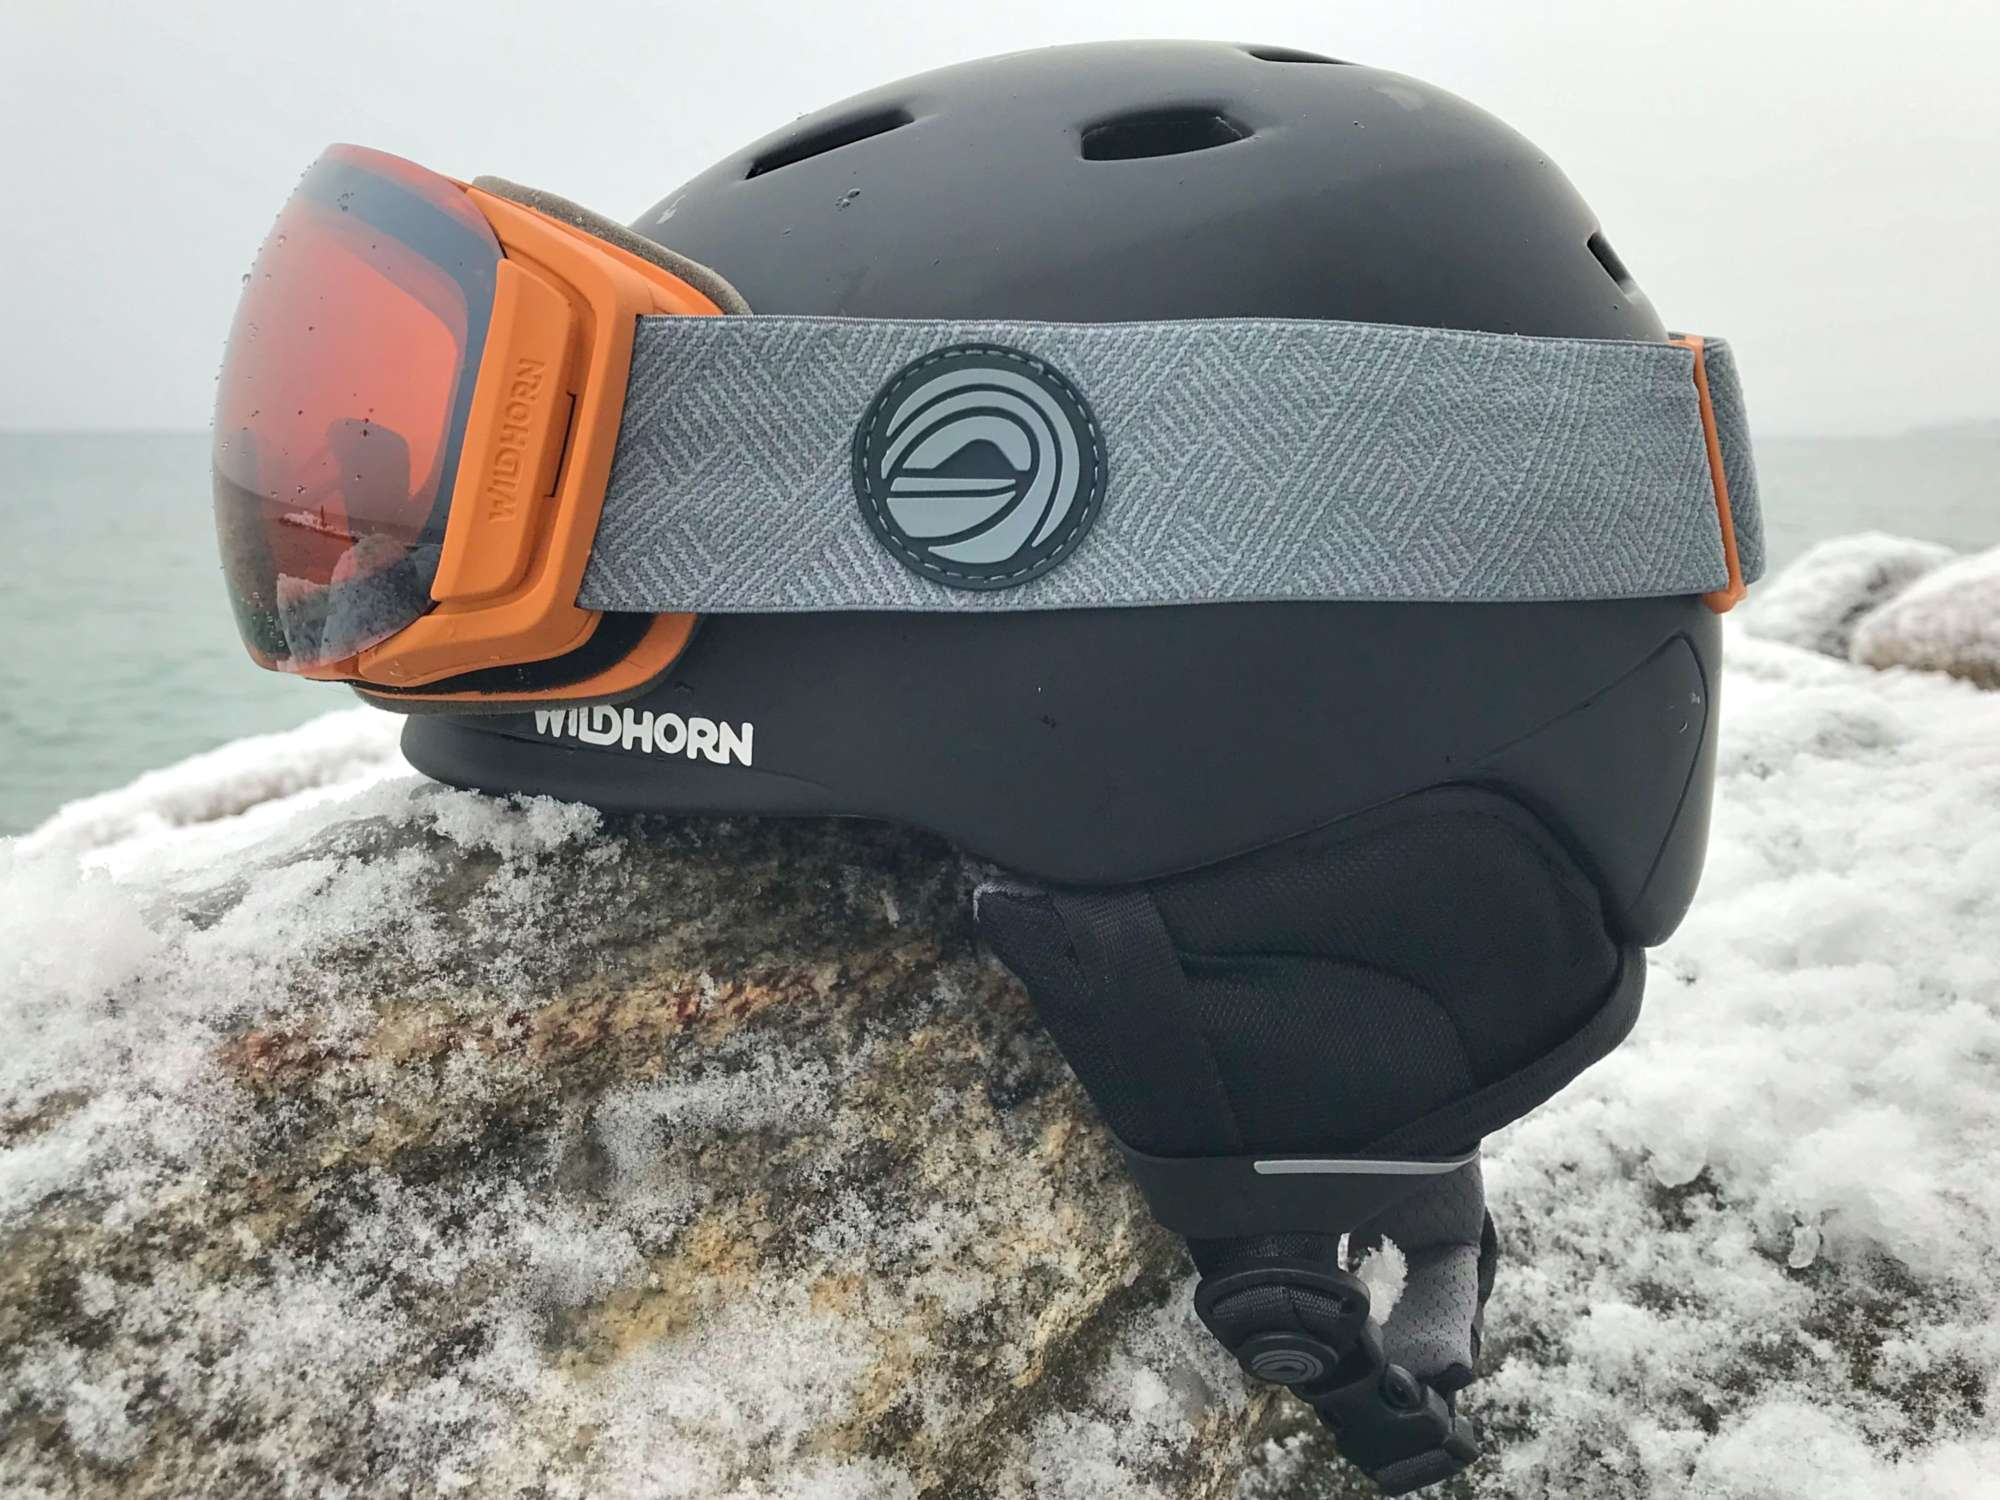 Wildhorn-Snow-Helmet-and-Goggles-Better-for-Less-helmet-and-goggles-on-rock